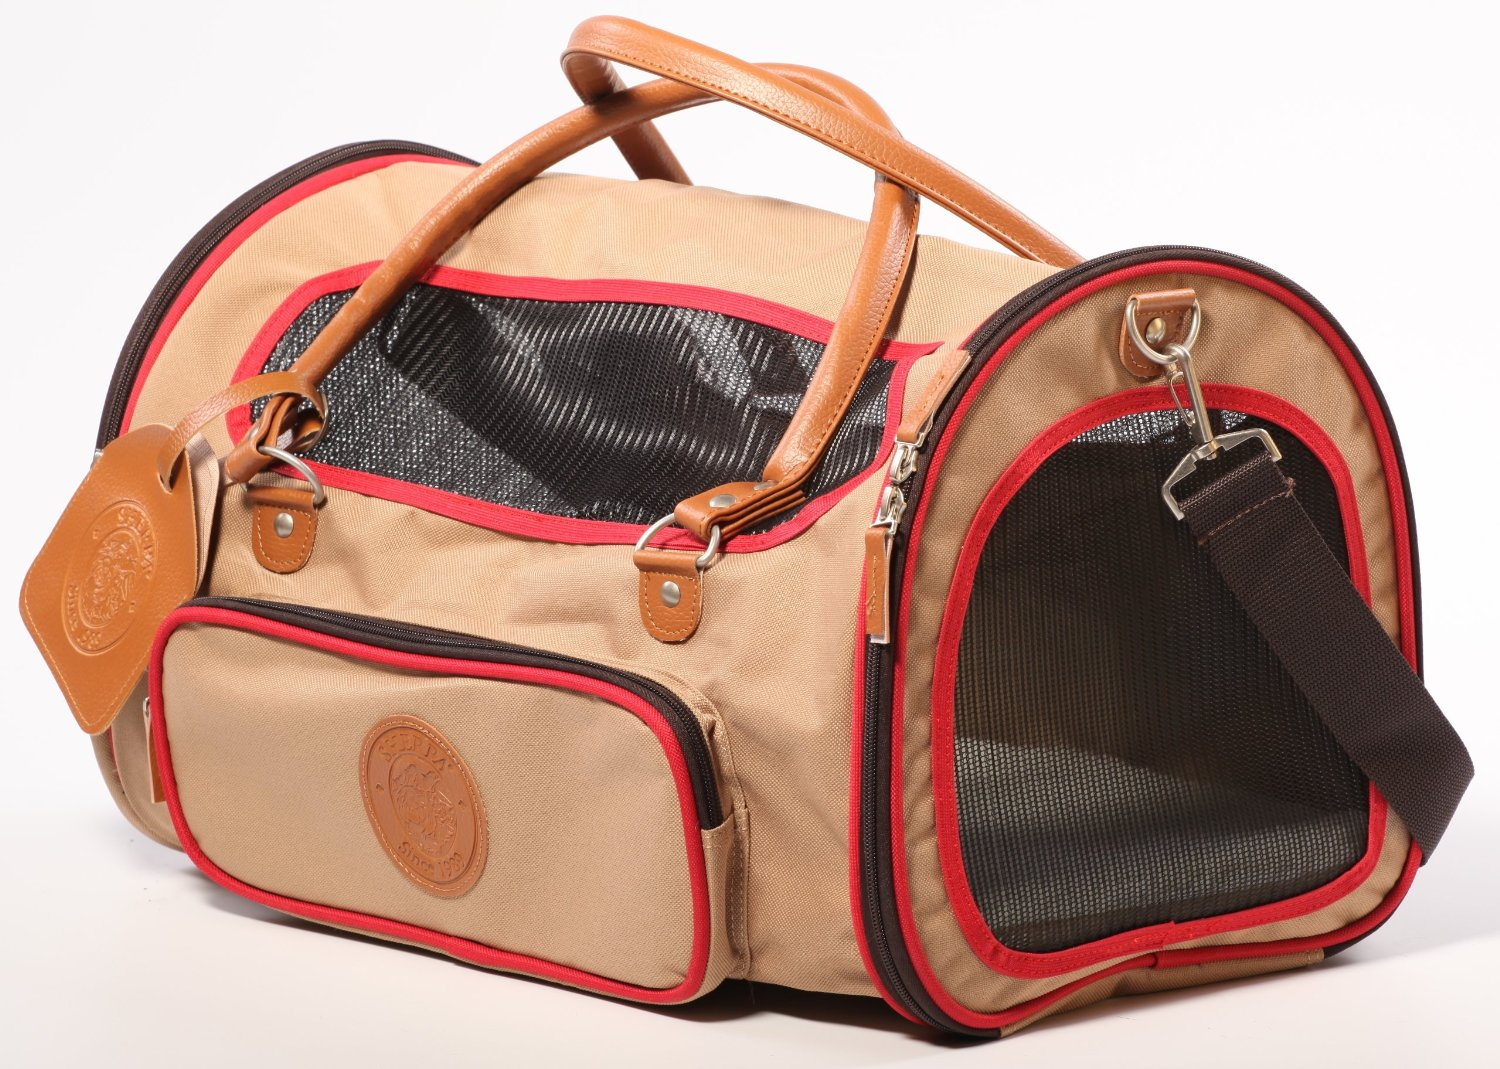 Sherpa Element Duffle Pet Carrier with Dual Entry and Approved by Most Airlines - Available in 2 Sizes